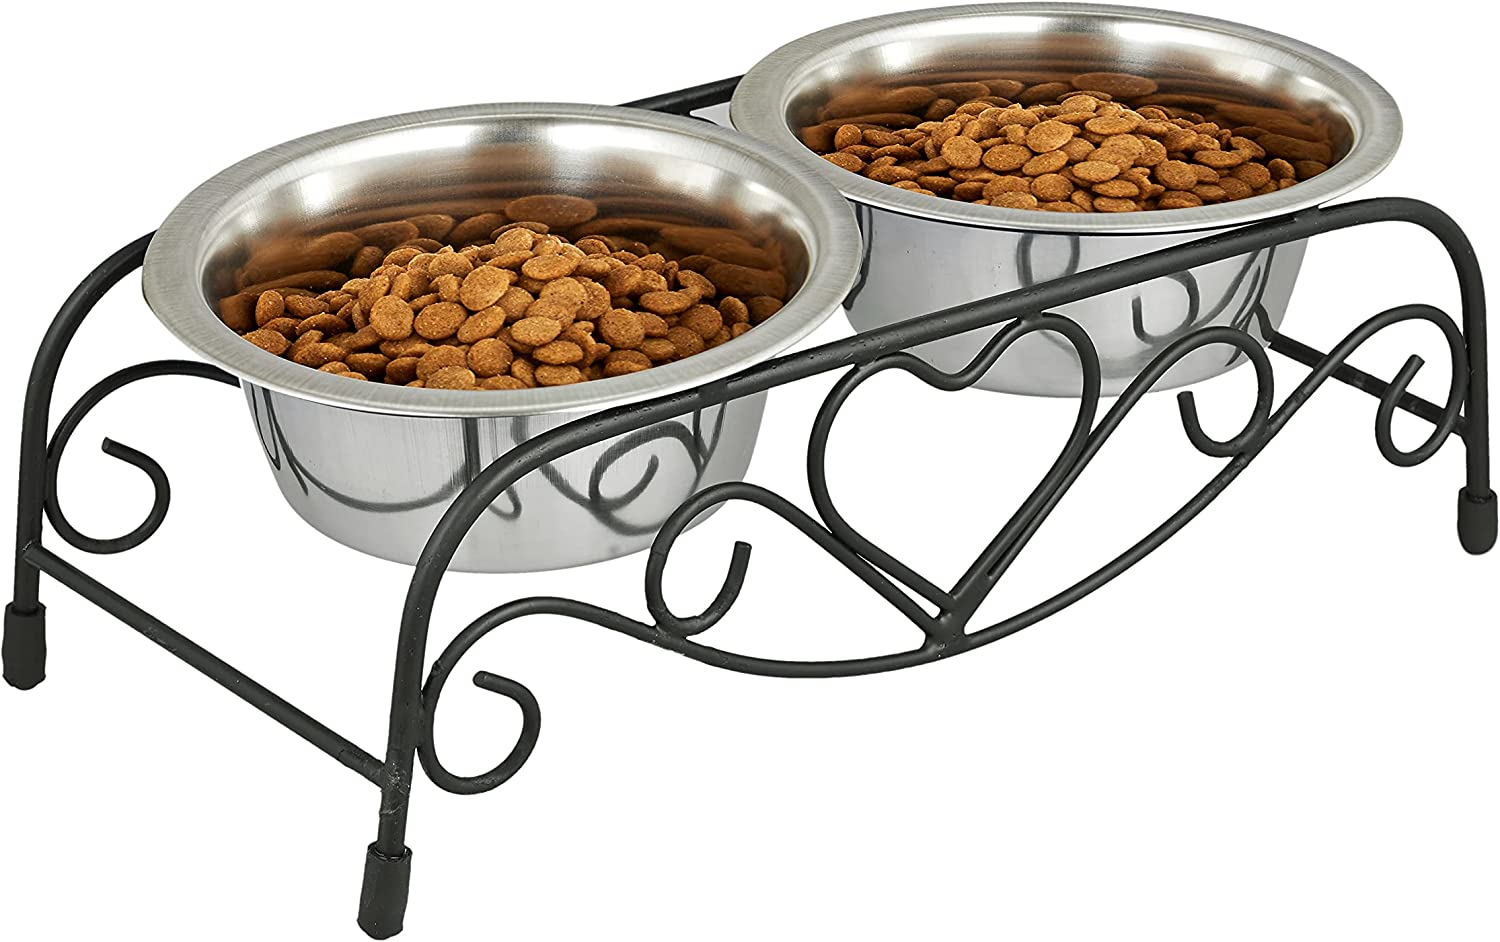 Elevated Cat Food Bowls Set – Peet Feeder Raised Cat Bowls for Food and Water - Metal Stainless Steel Elevated Pet Dishes Bowls with Wire Rack Stand – Small Cats and Small Dogs Bowls - Dishwasher Safe